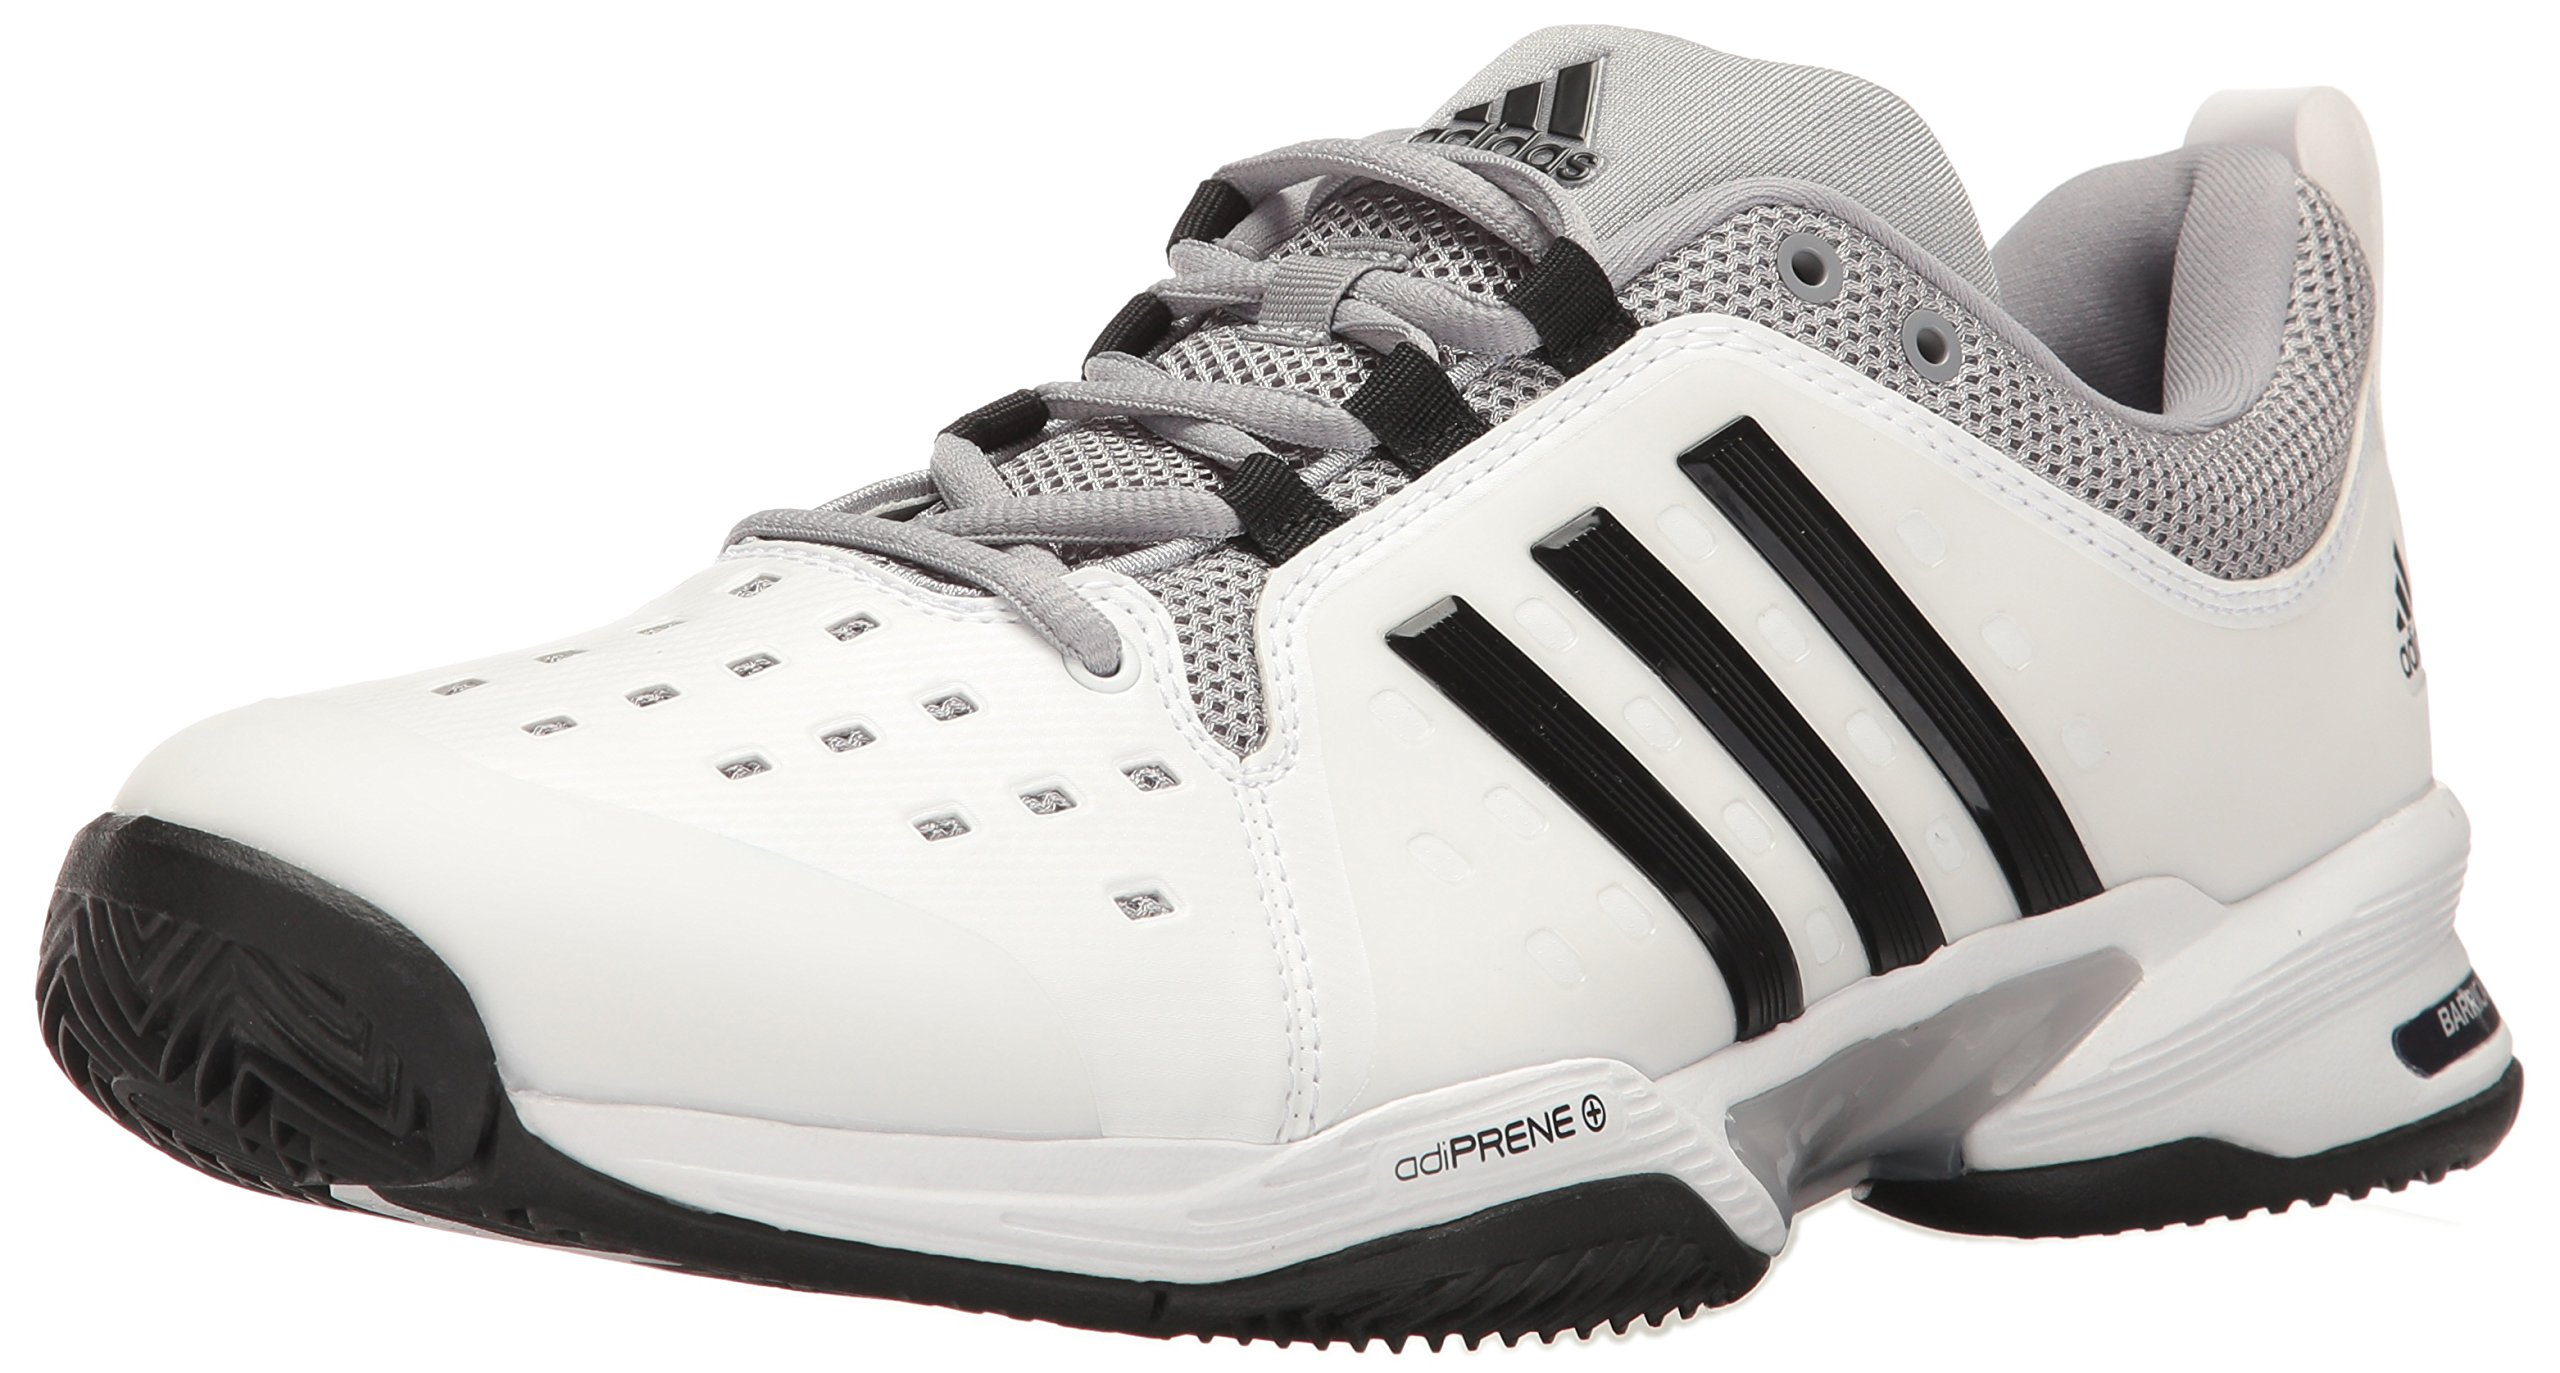 innovative design 01ab1 e46c5 Galleon - Adidas Barricade Classic Wide 4E Tennis Shoe,WhiteCore BlackMid  Grey,9 US